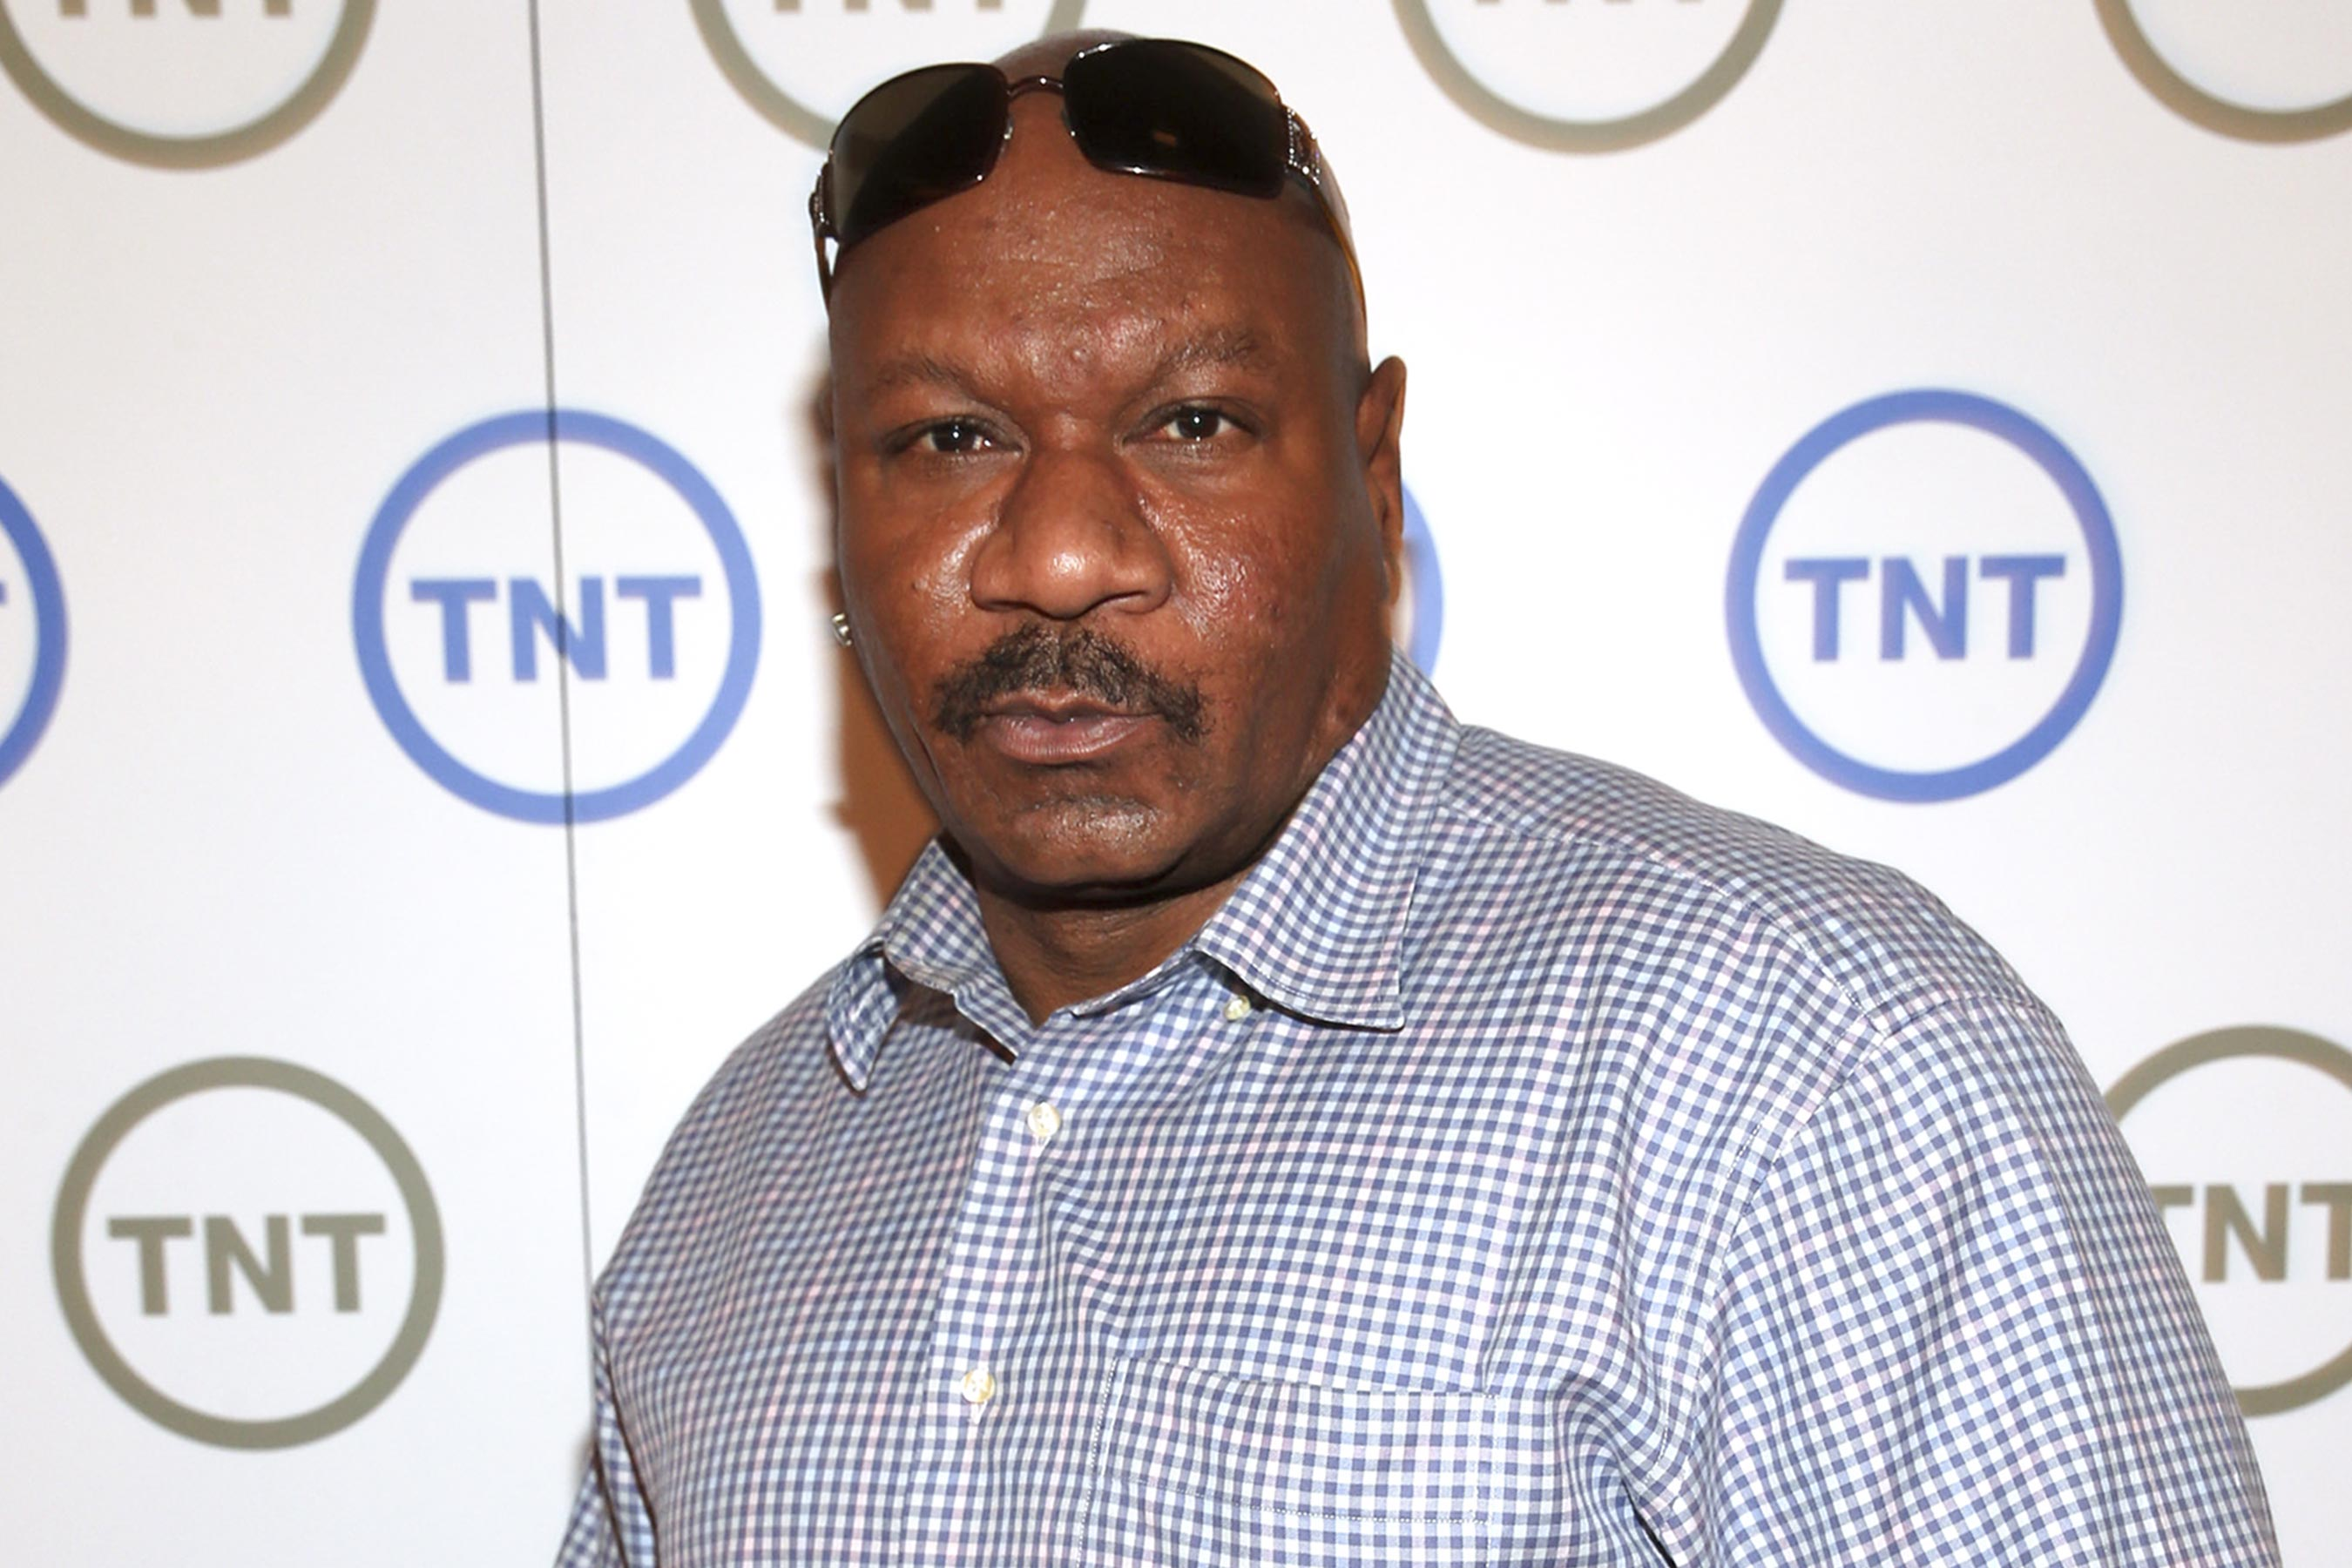 Ving Rhames Claims Police Held Him at Gunpoint in His Own Home After Neighbor Reported a Robbery